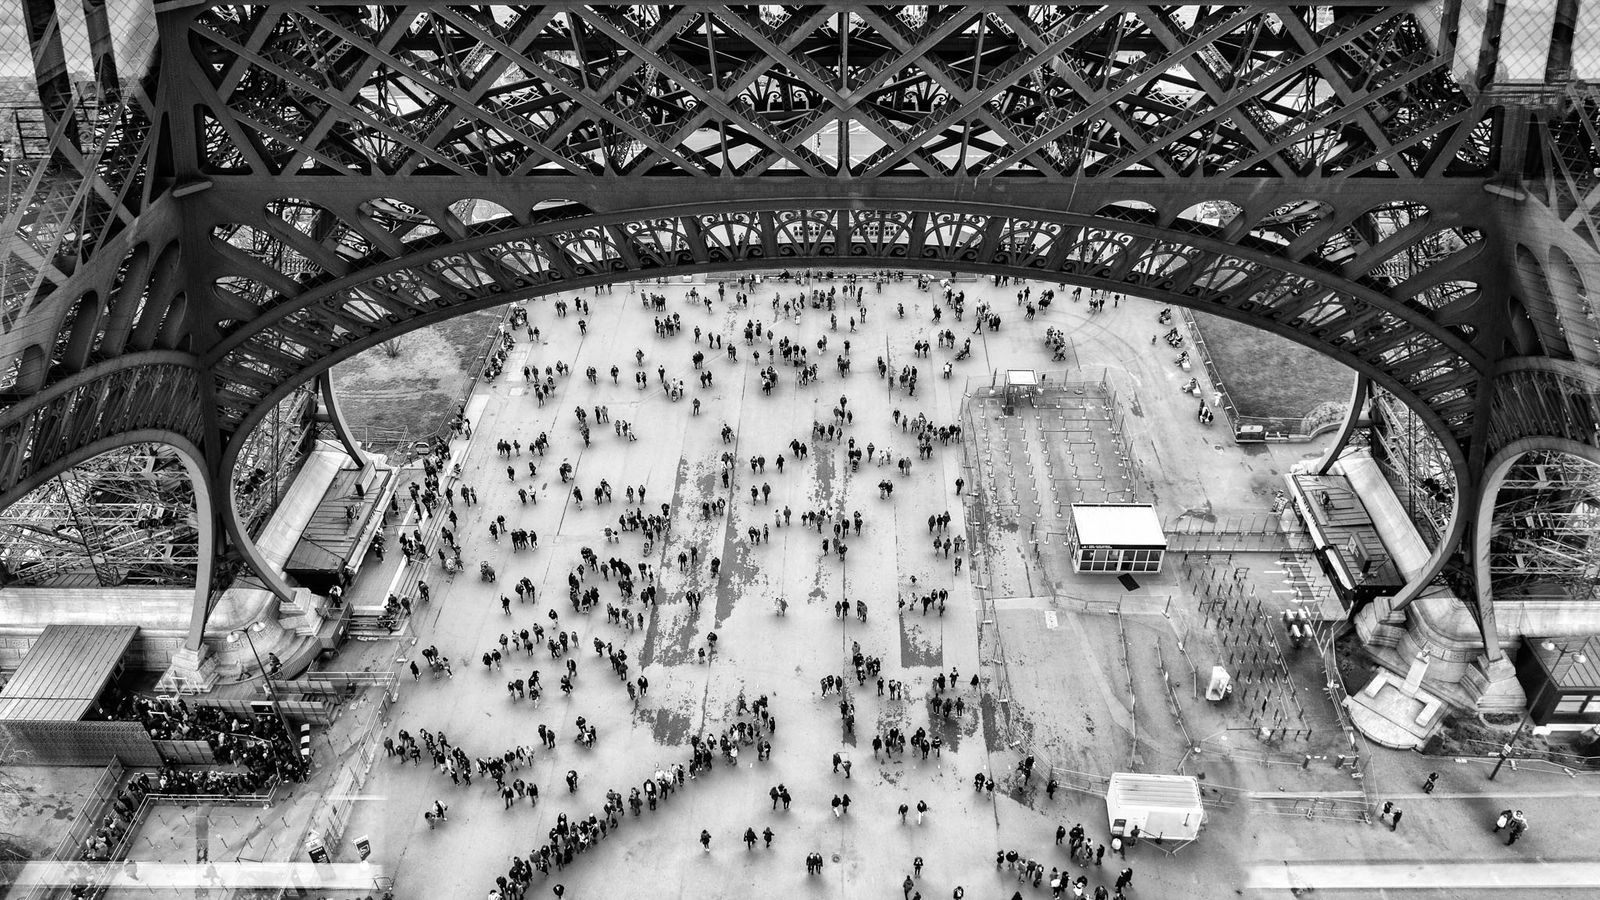 Crowds mass beneath the iconic structure of the Eiffel Tower.